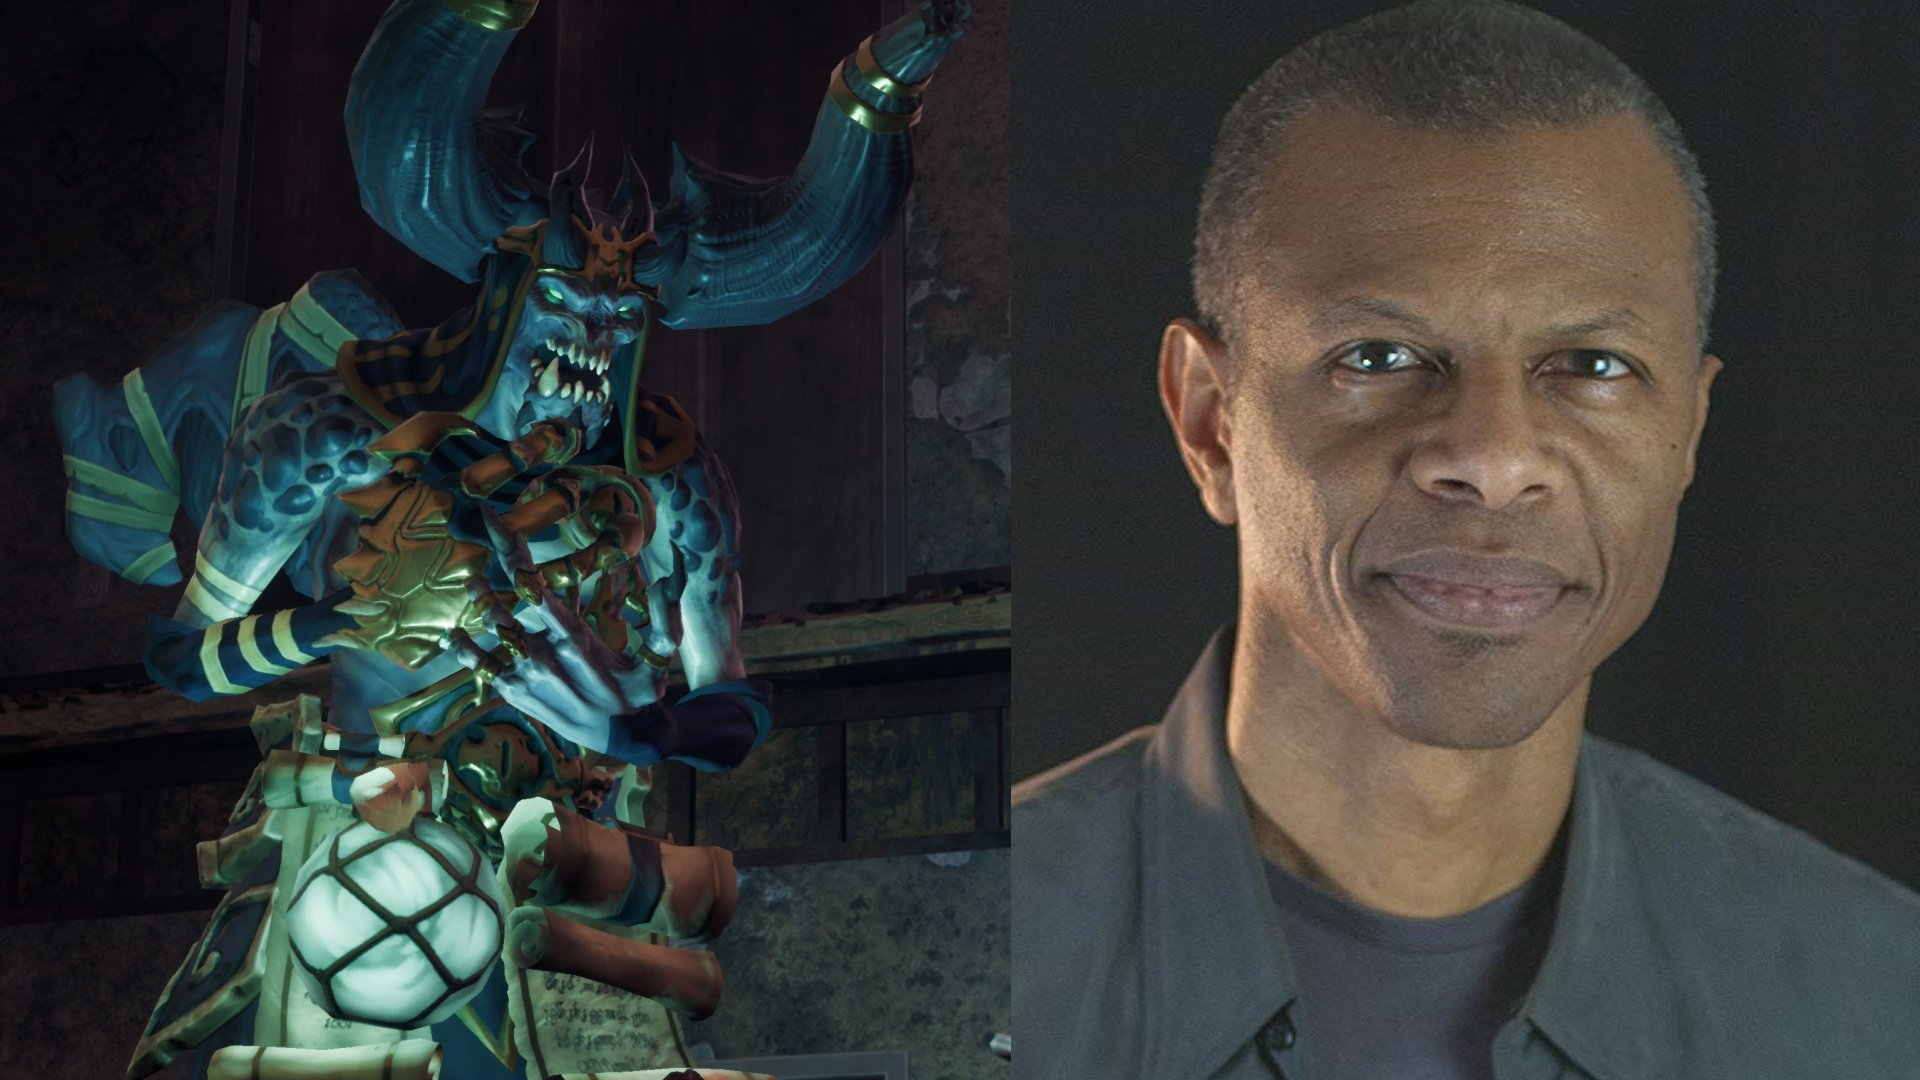 Vulgrim is voiced by Phil LaMarr